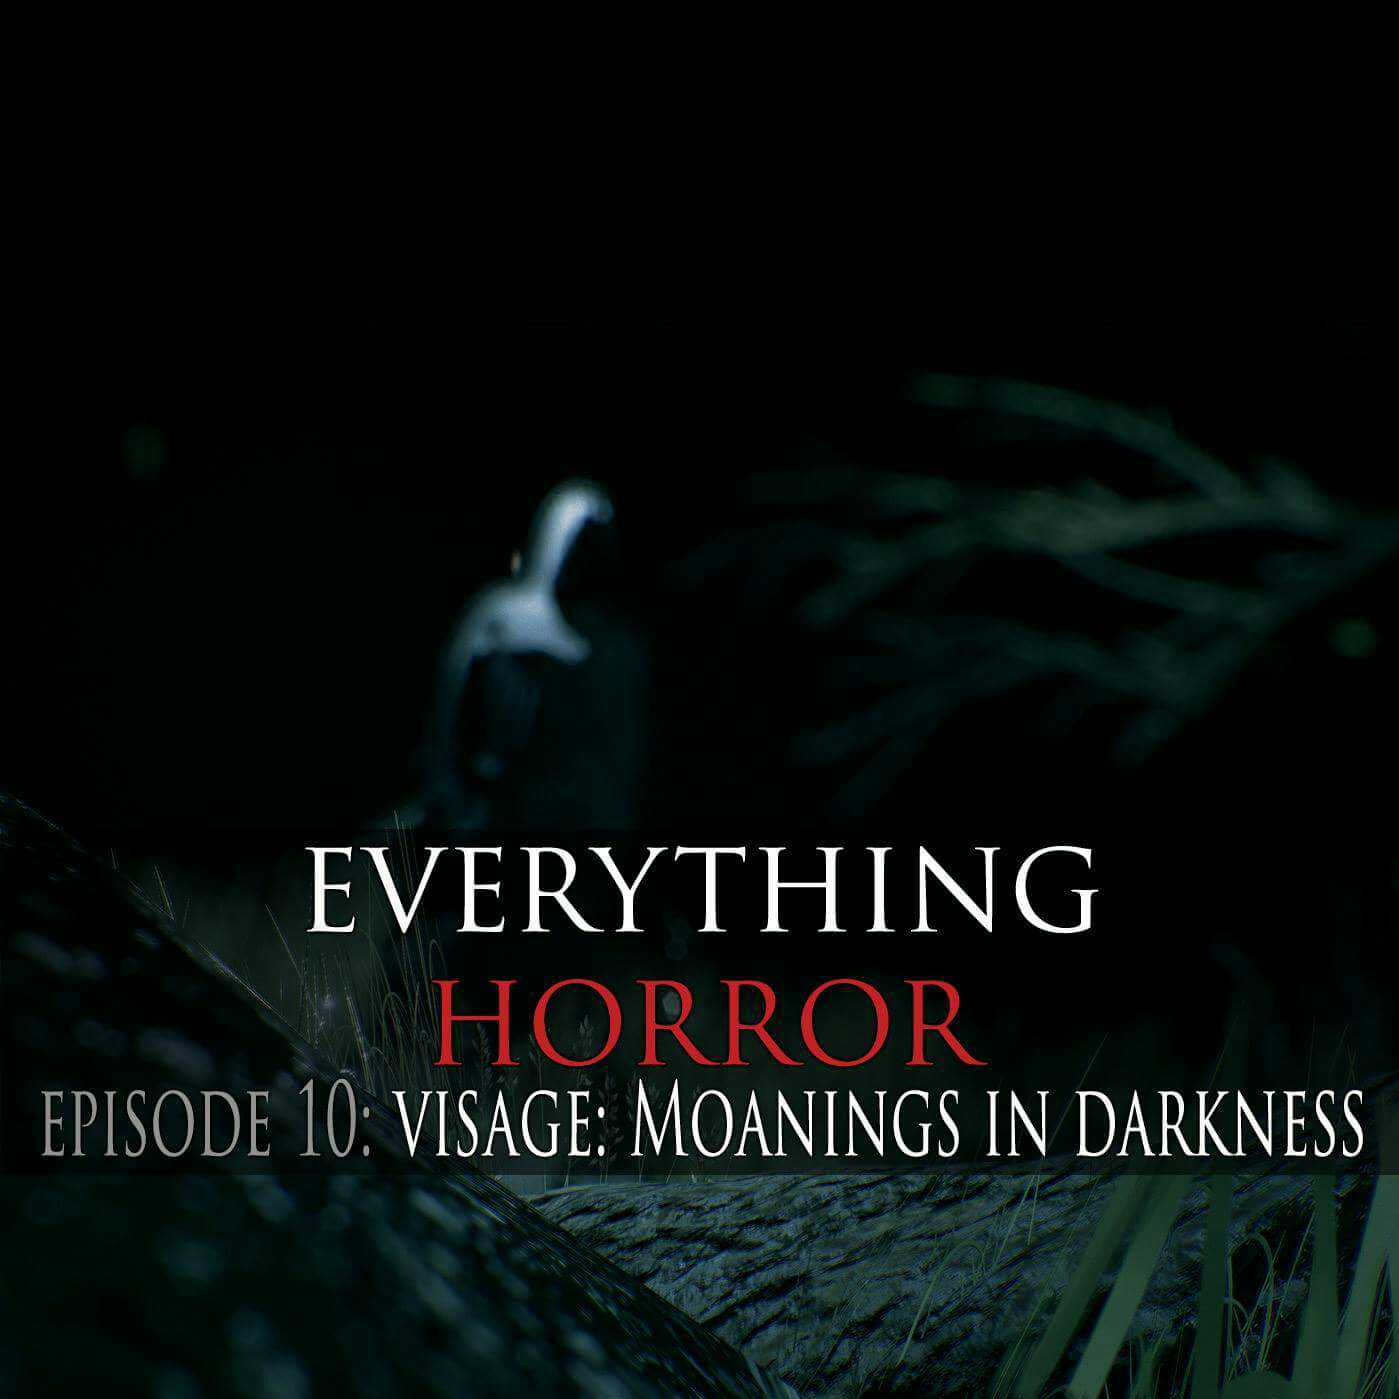 S1: Episode 10: Visage - Moanings In Darkness